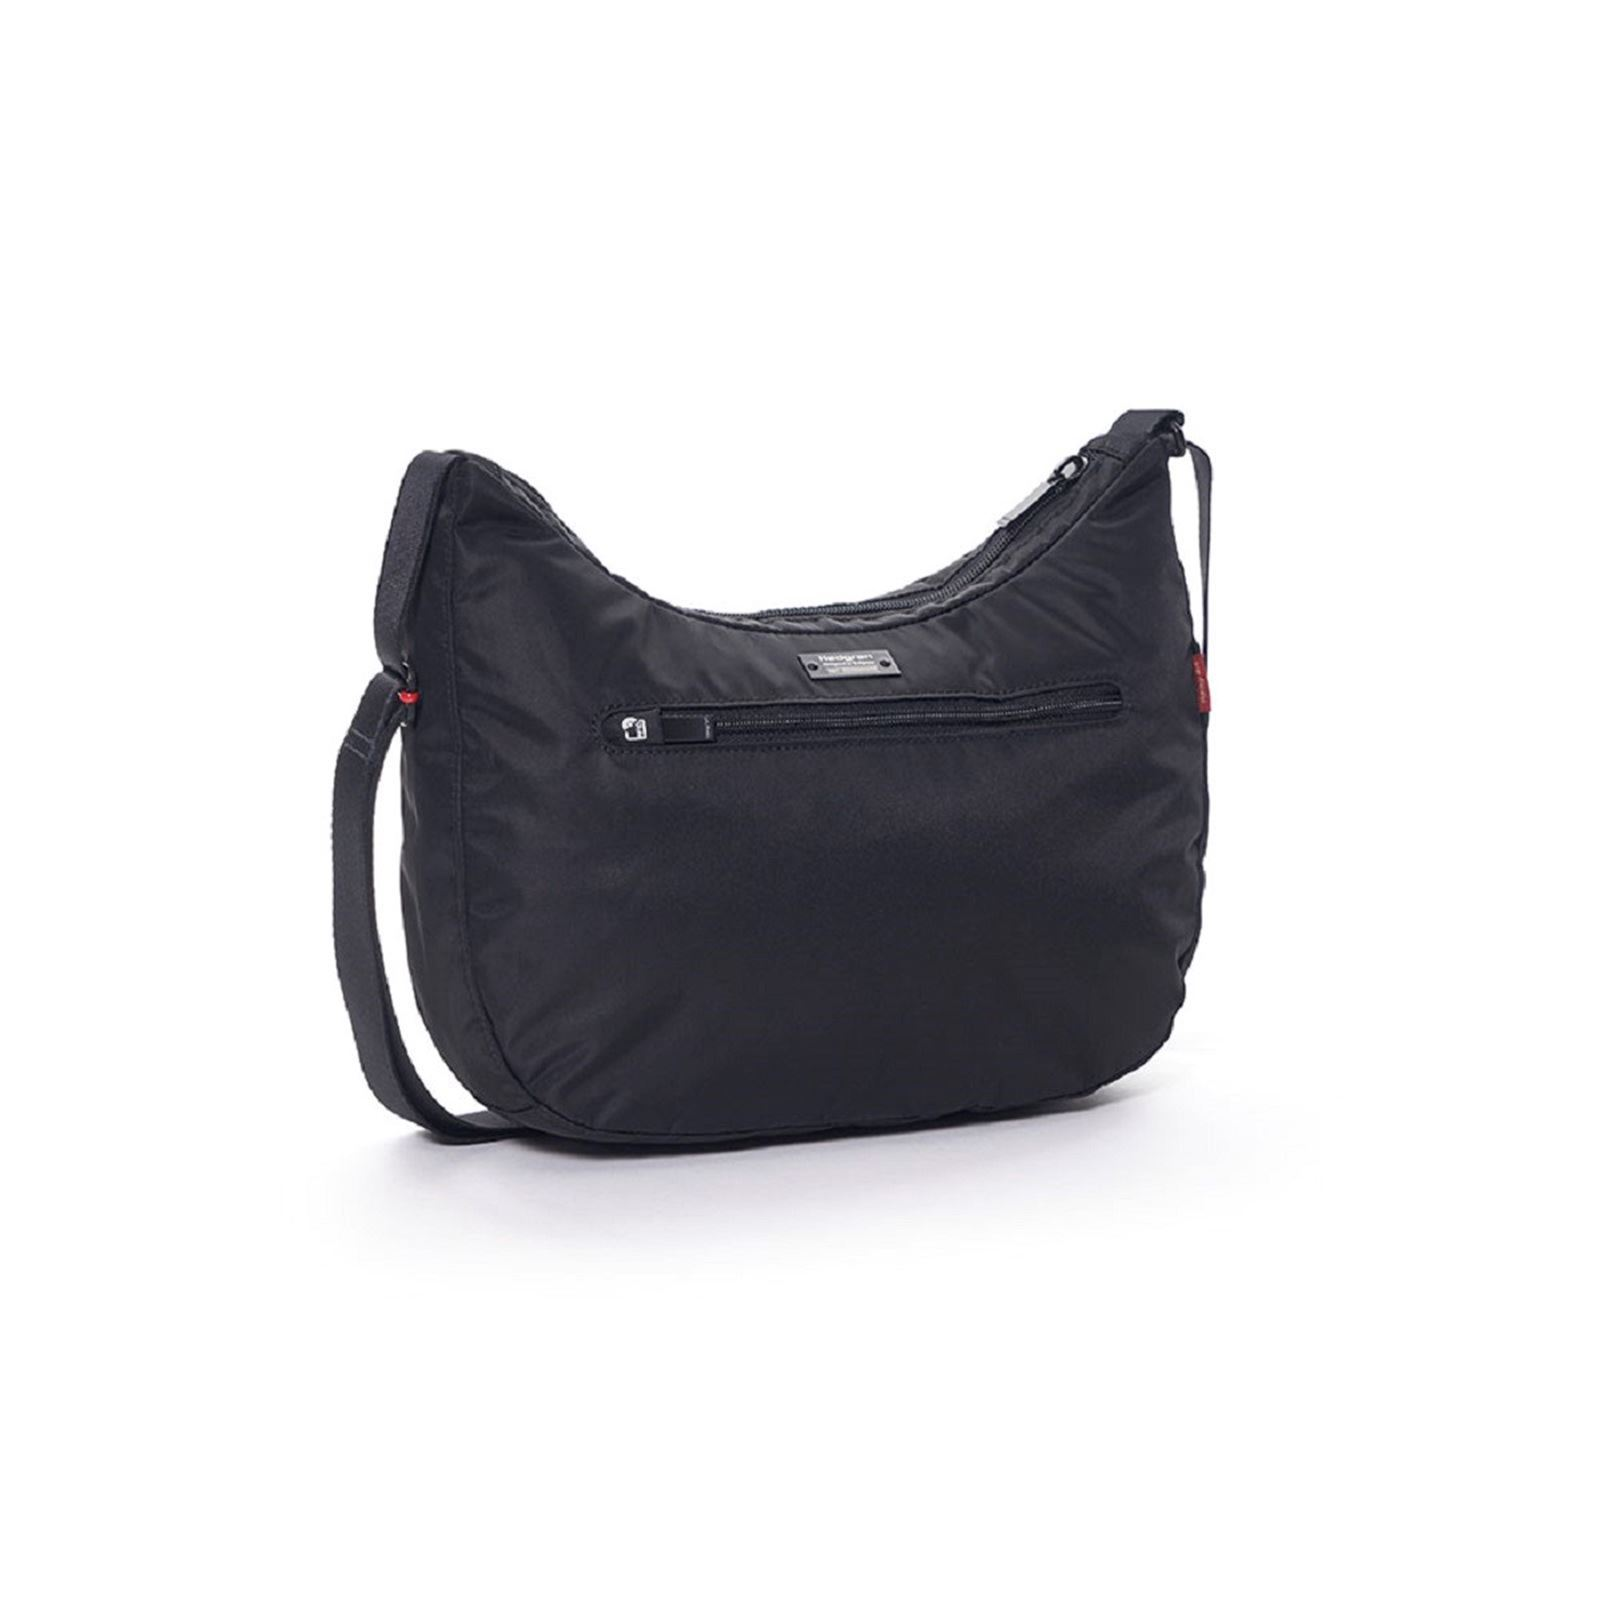 e29e150311 Hedgren Inter city - Sac bandoulière - noir | BrandAlley